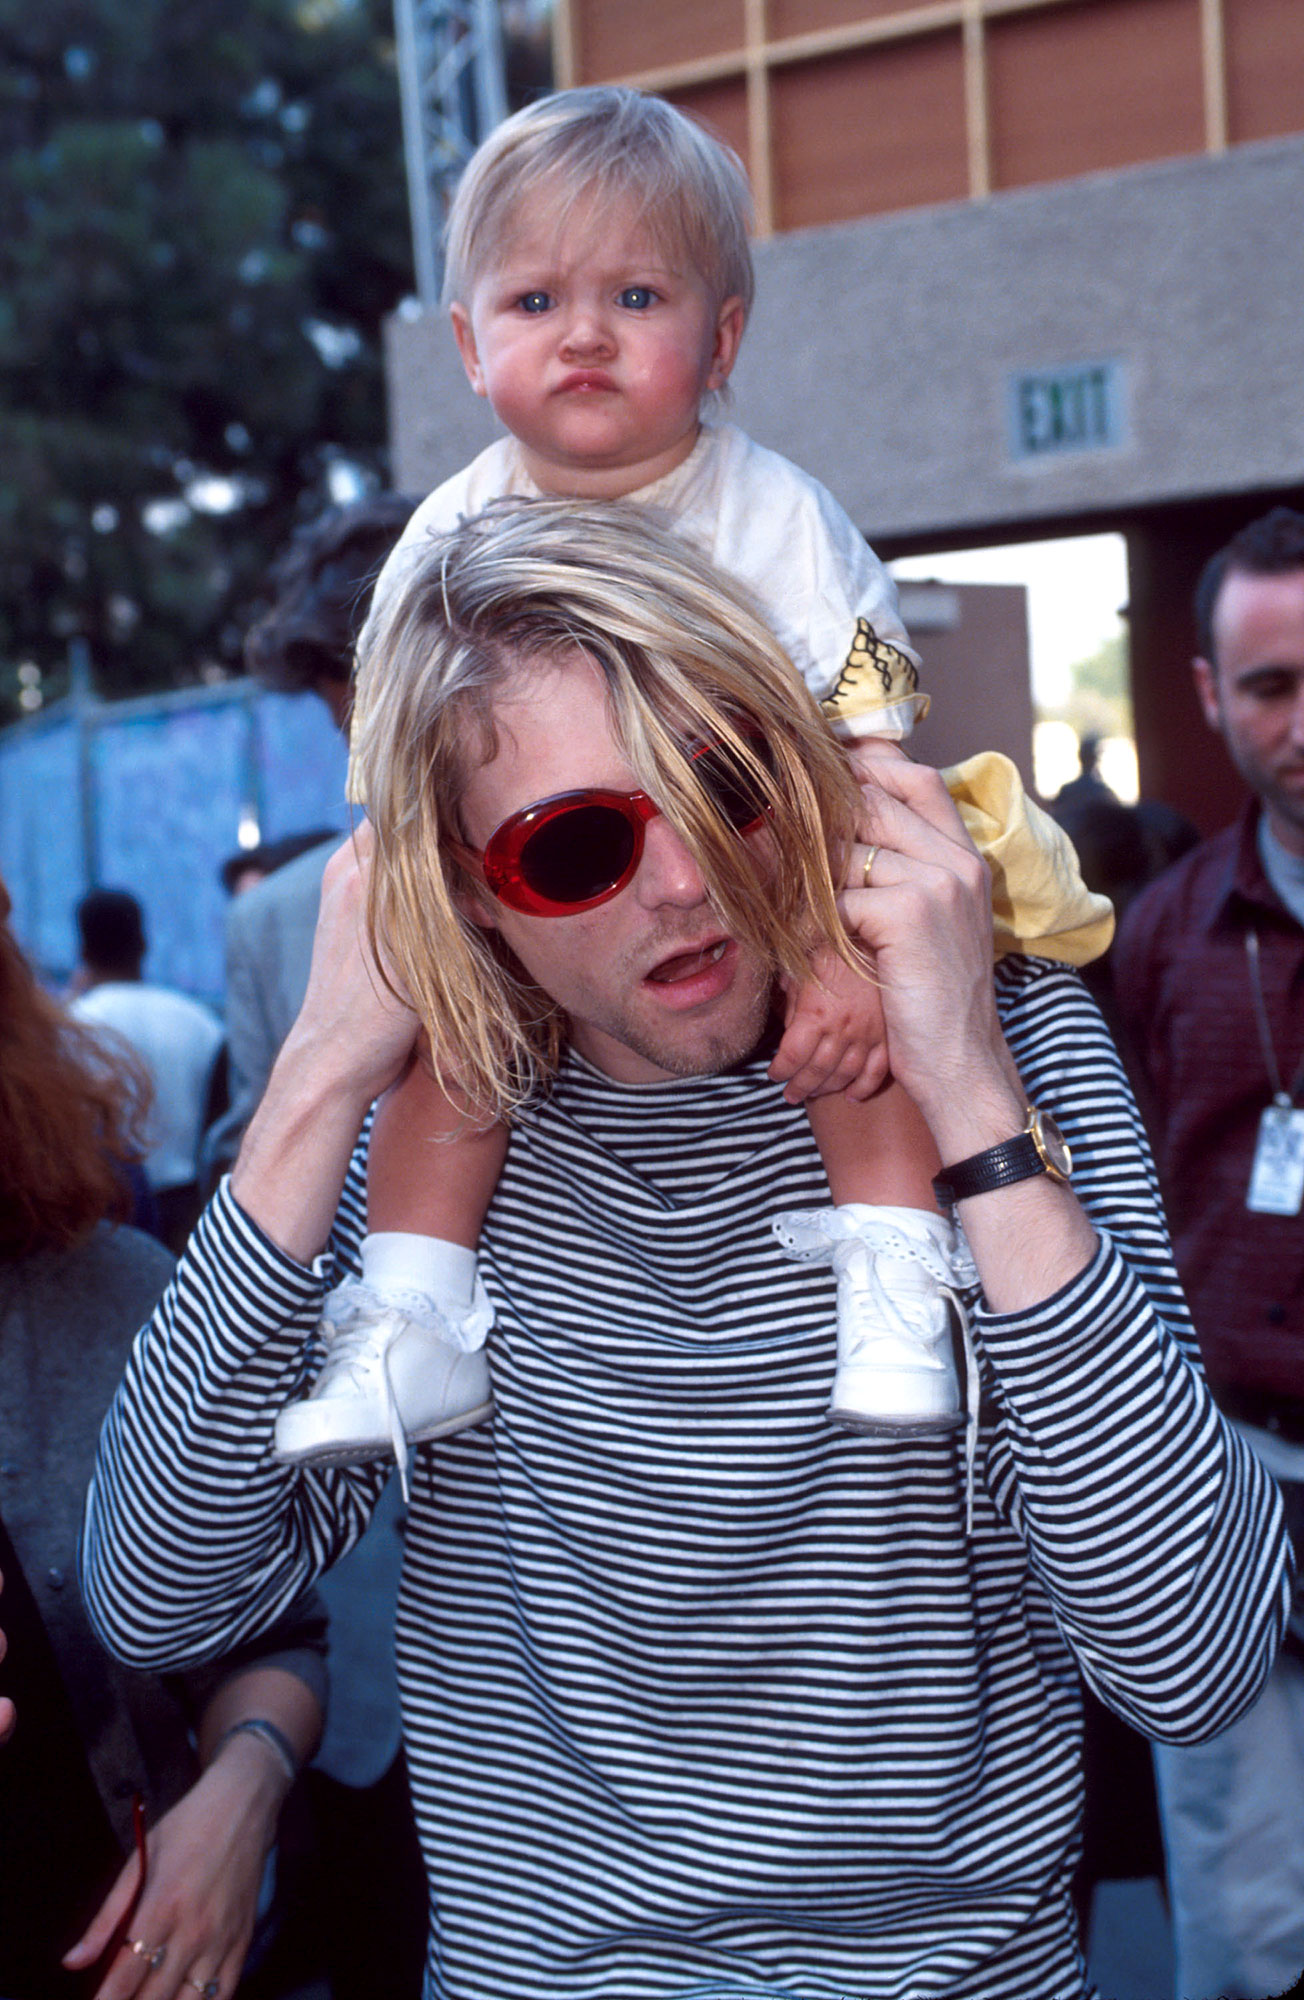 Frances Bean Cobain Talks Suicide Prevention on Anniversary of Dad's Death - Kurt Cobain of Nirvana and daughter Frances Bean Cobain.